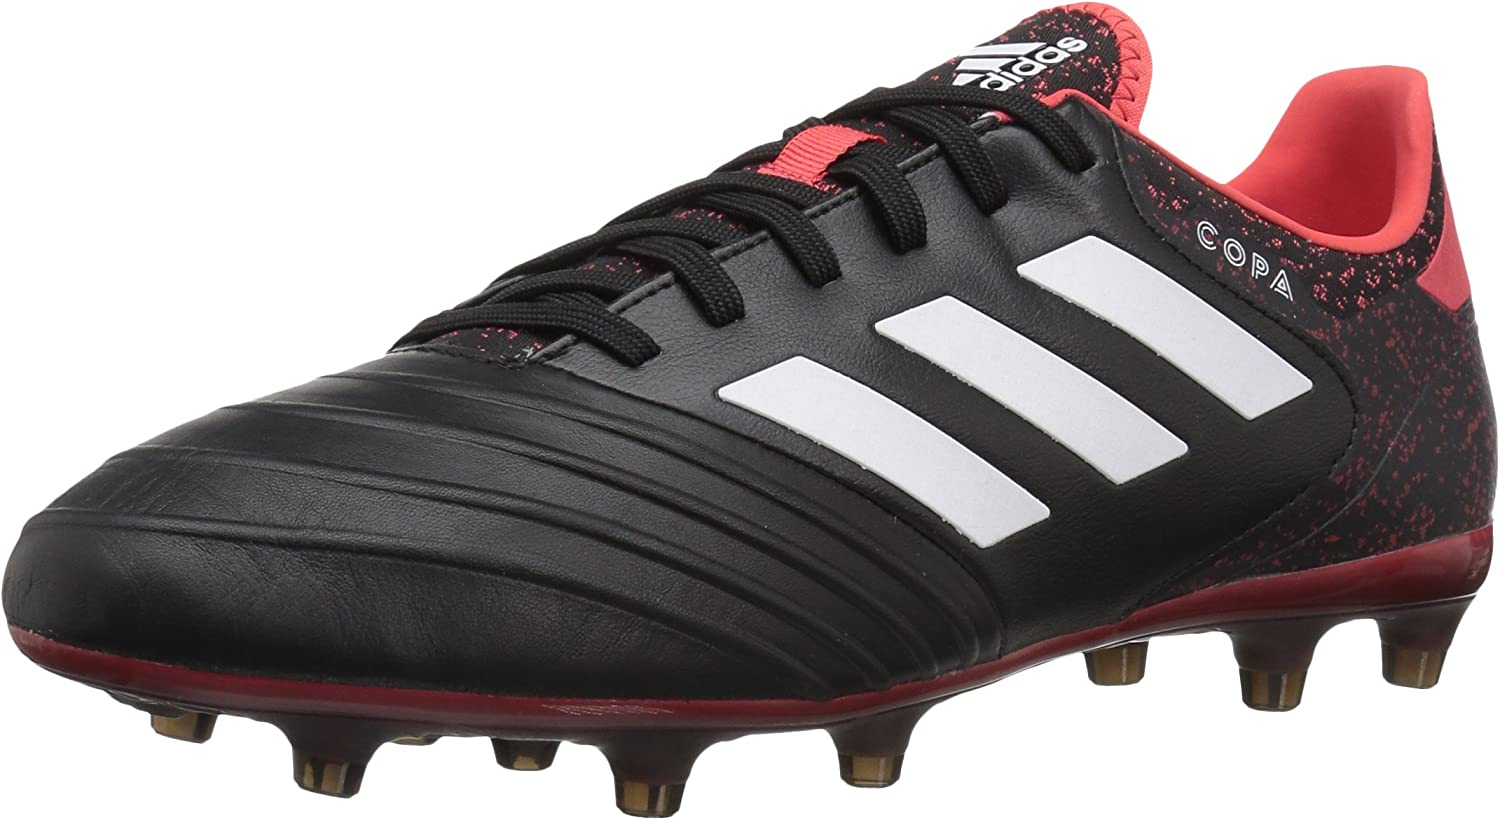 Adidas Men's Copa 18.2 Firm Ground Soccer schuhe, schwarz Weiß Real Coral, 8.5 M US